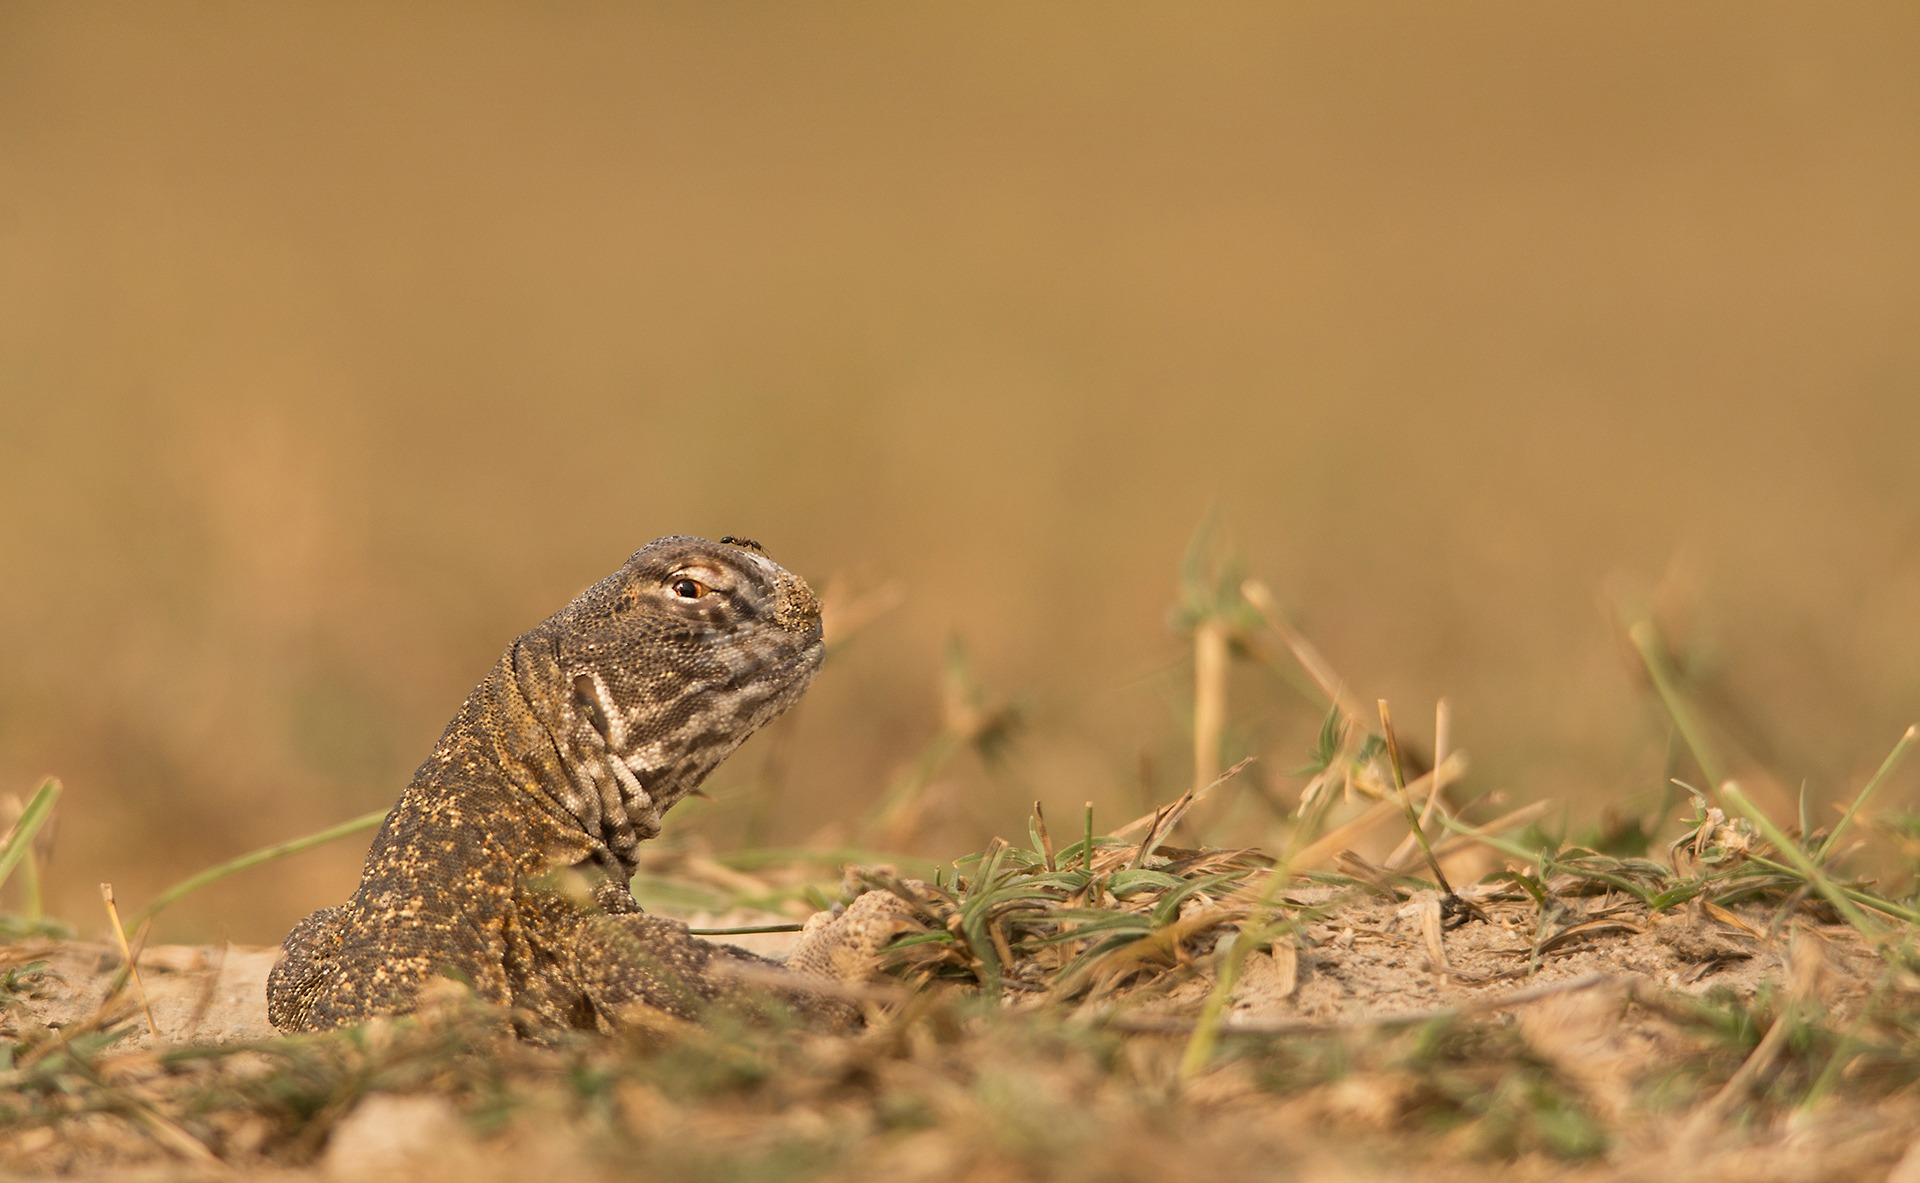 A spiny-tailed lizard scopes out the landscape, before fully emerging from its burrow (above). It spends the night underground, but also retreats to its burrow when it senses a threat. It appears to know its own burrow, though it is unclear how it identifies it amongst the others.  The spiny-tailed lizard aka Saara hardwickii is one of many reptile species in the Thar Desert, armed with special adaptations that enable them to thrive in extreme conditions (top). It is found in dry habitats in the southwestern Asia, ranging from Iran to north-western India.